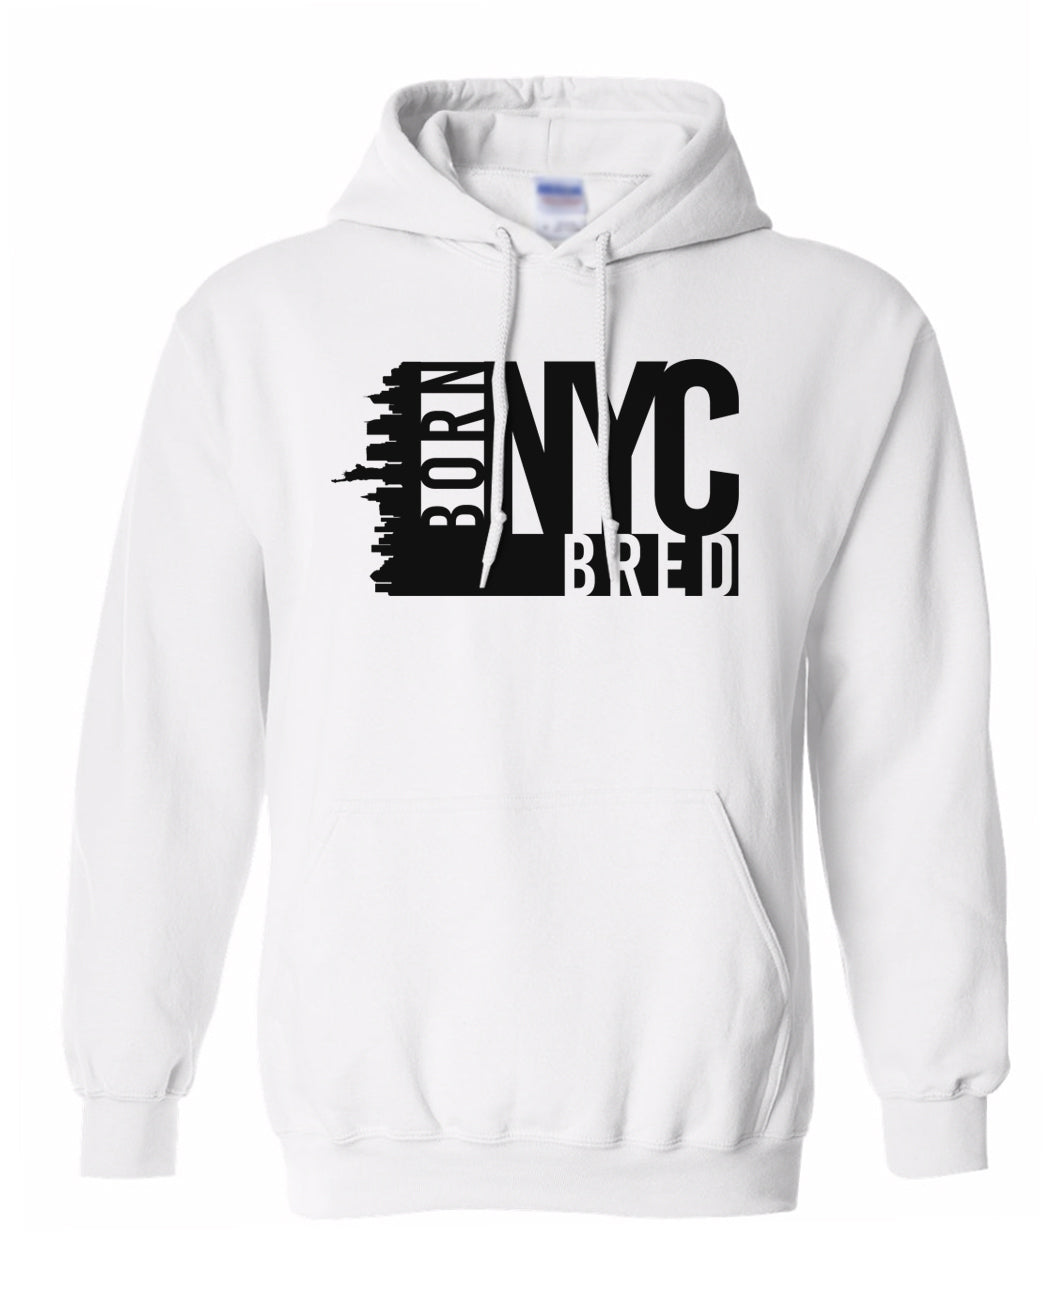 white New York City hoodie